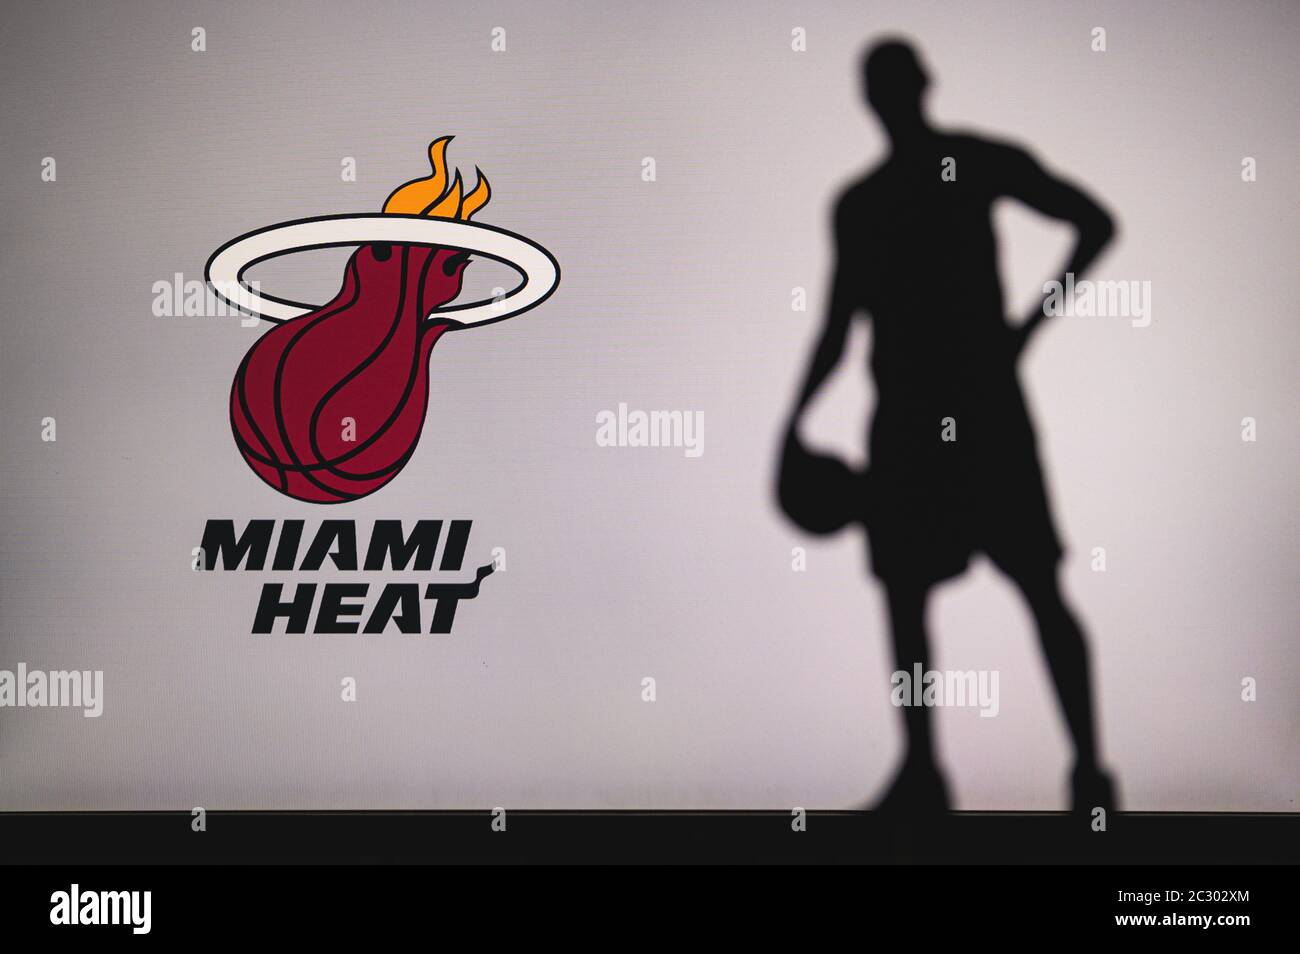 New York Usa Jun 18 2020 Miami Heat Logo Of Professional Basketball Club In American League Silhouette Of Basket Player In Foreground Sport Conc Stock Photo Alamy